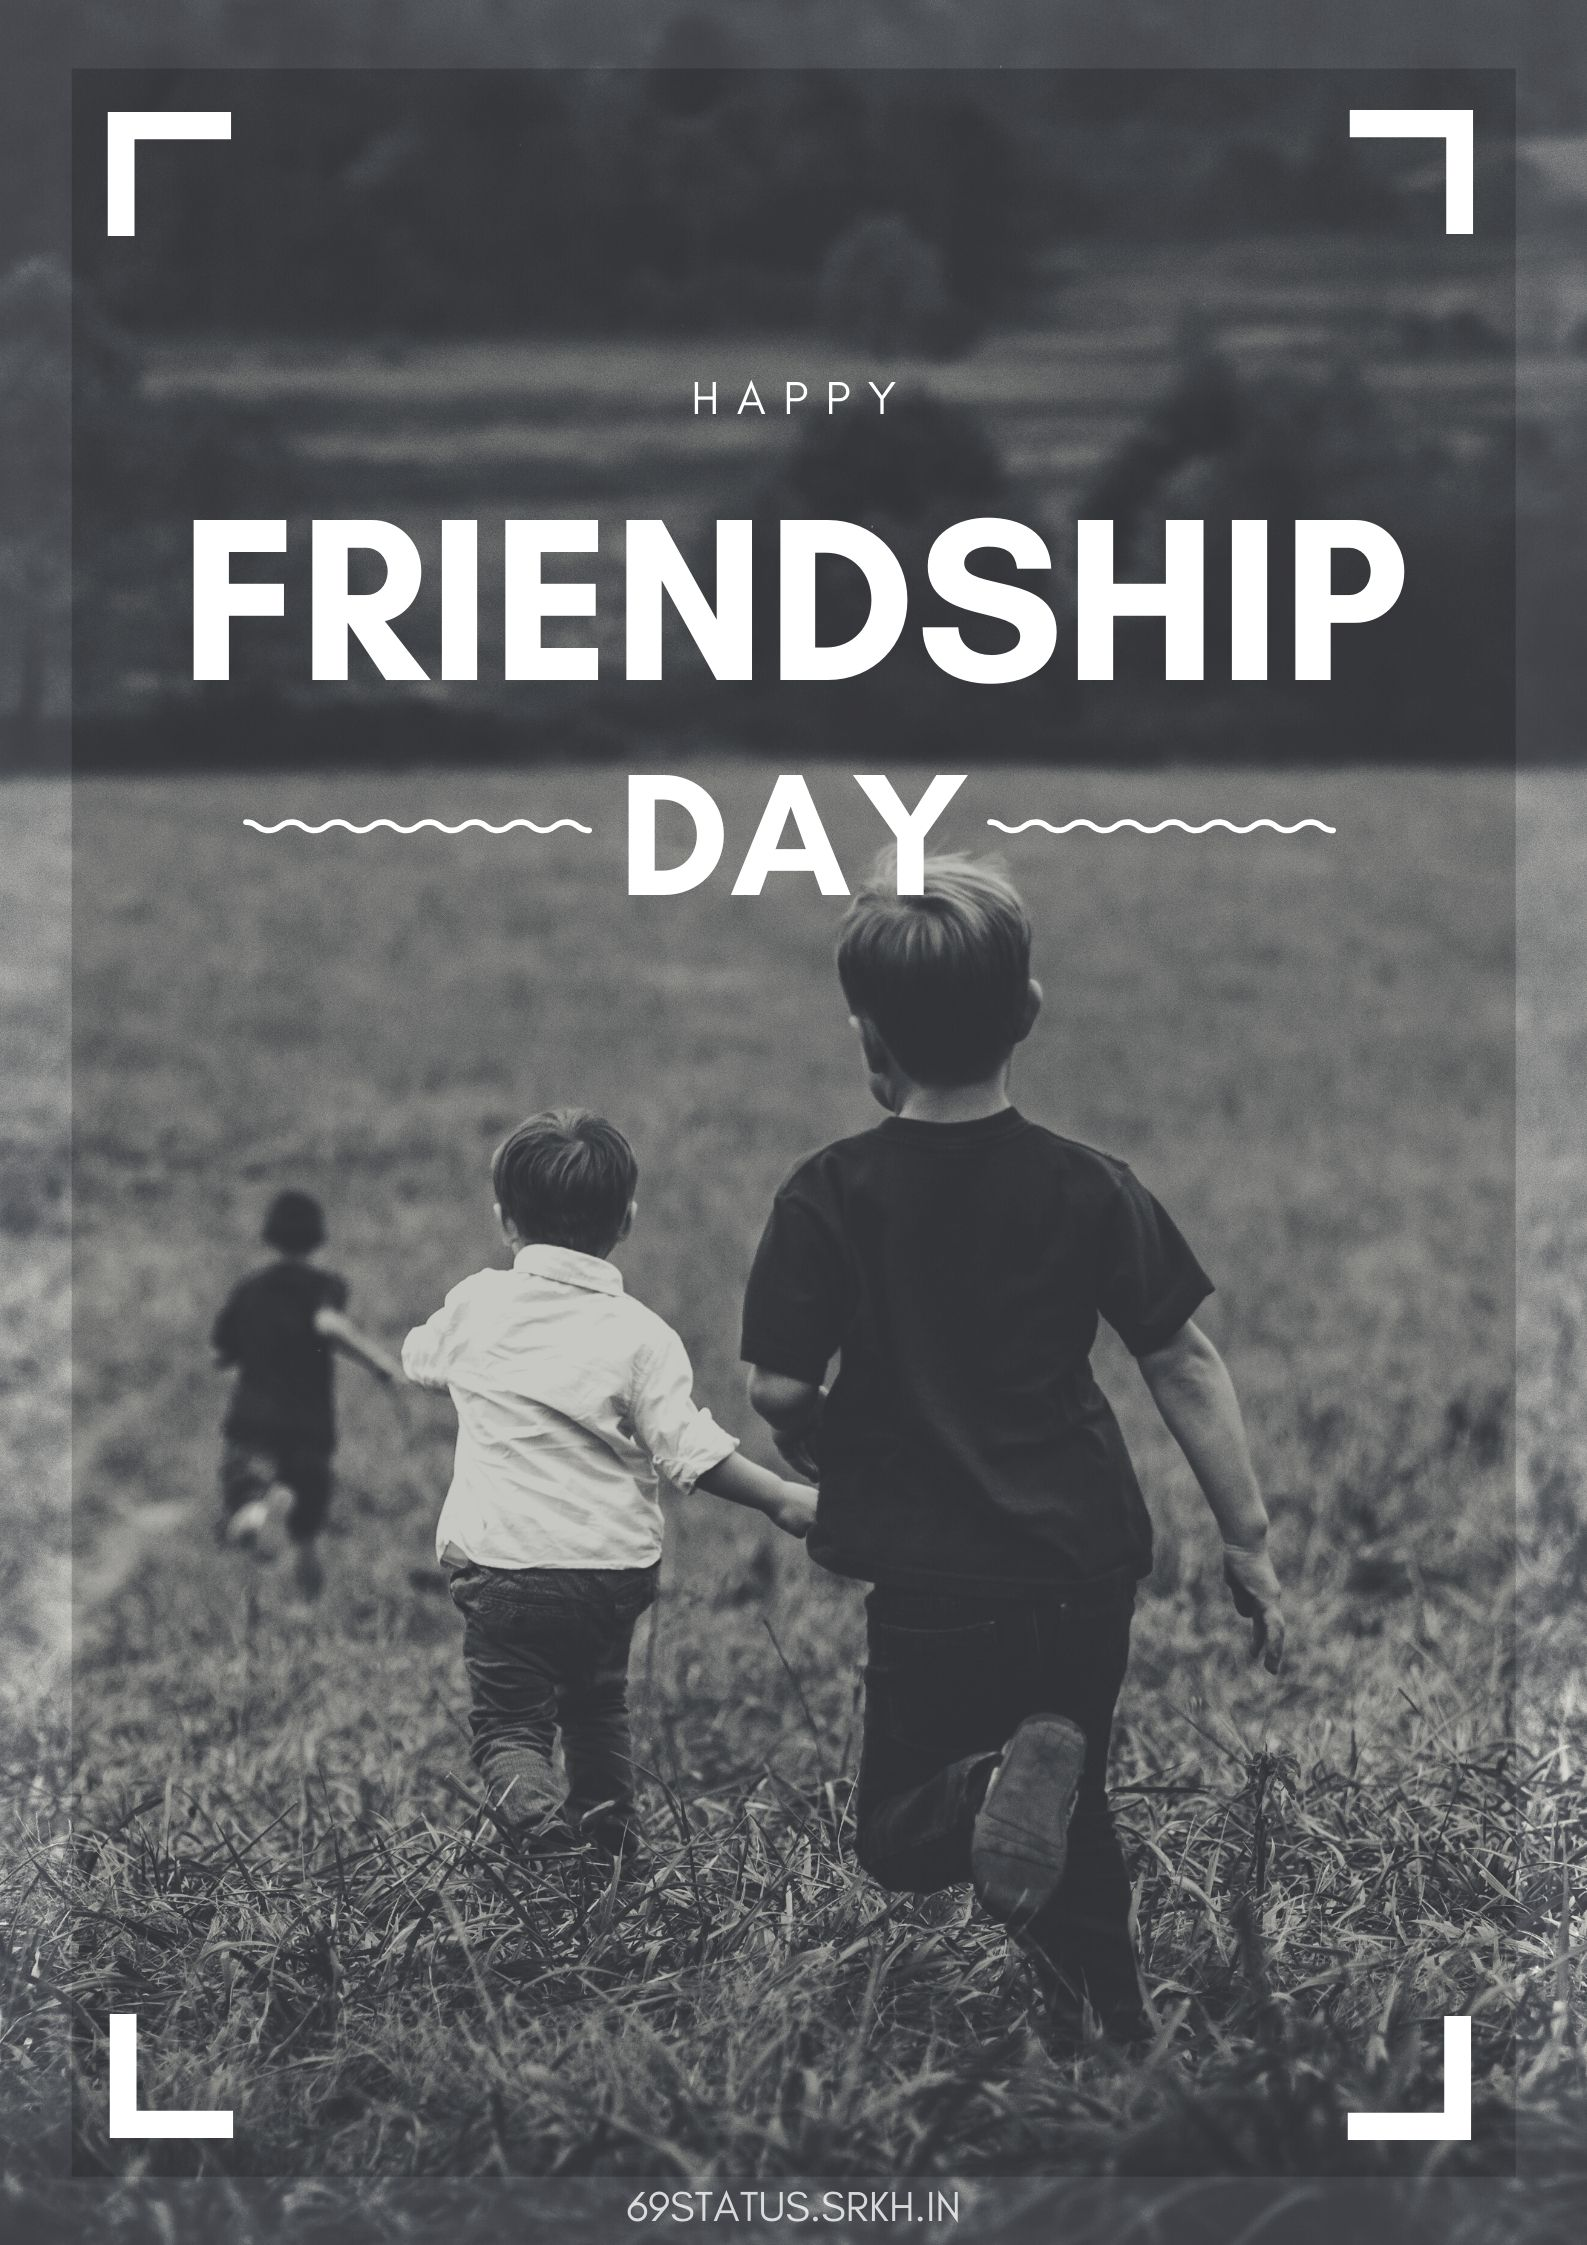 Happy Friendship Day Images for WhatsApp Status full HD free download.